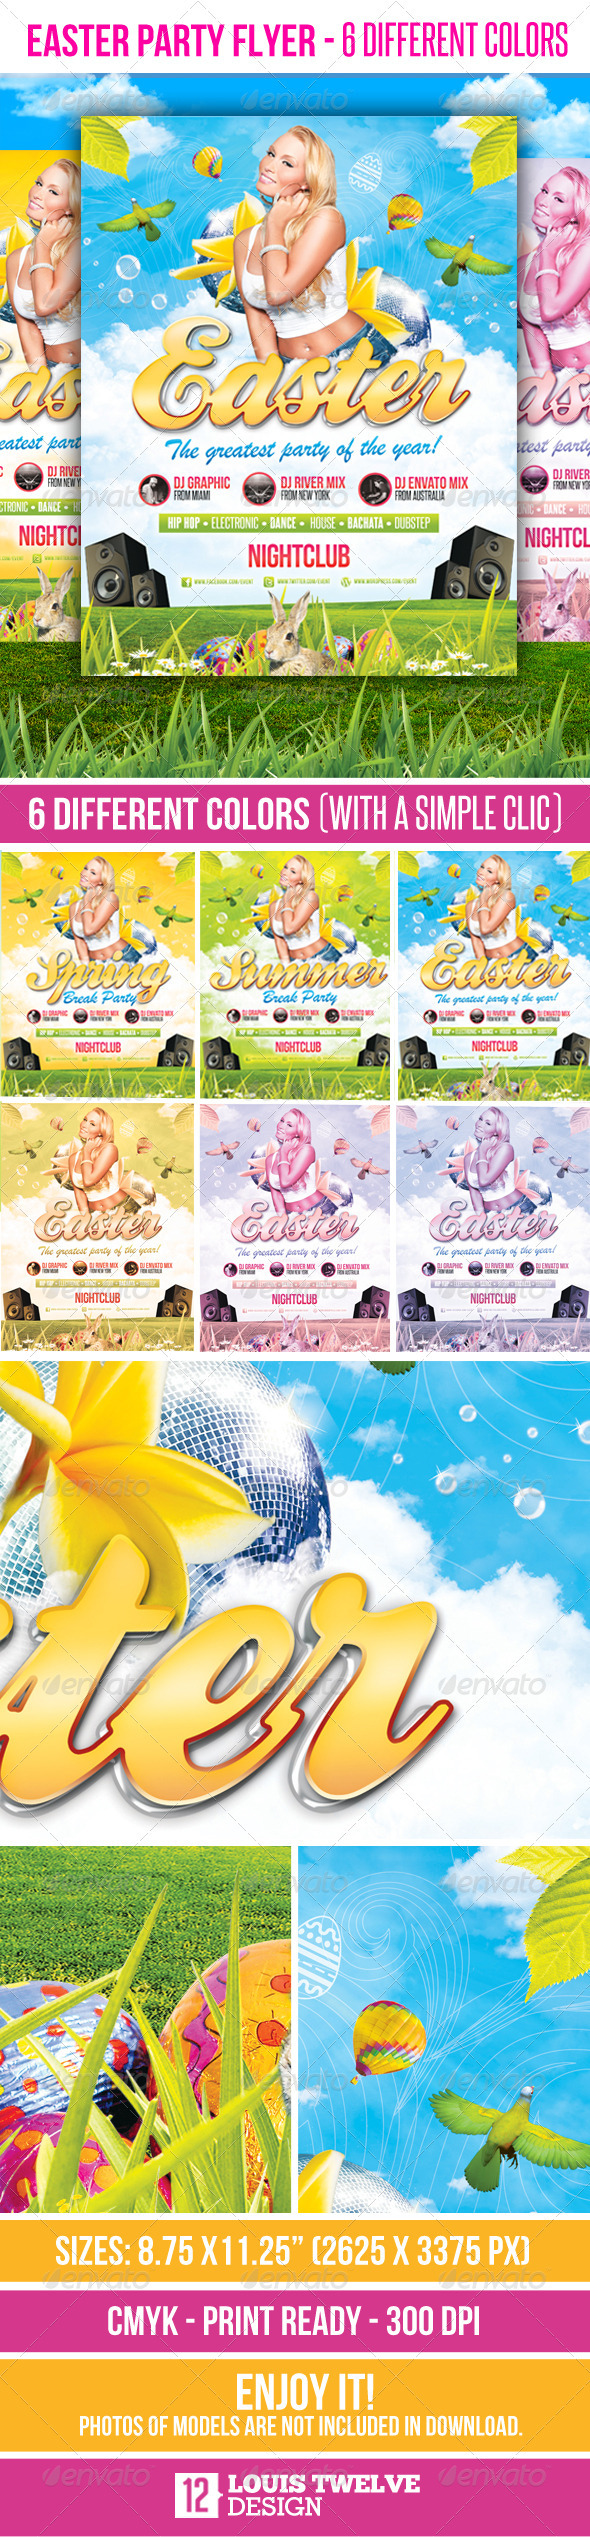 Easter Party - Flyer Template - Flyers Print Templates